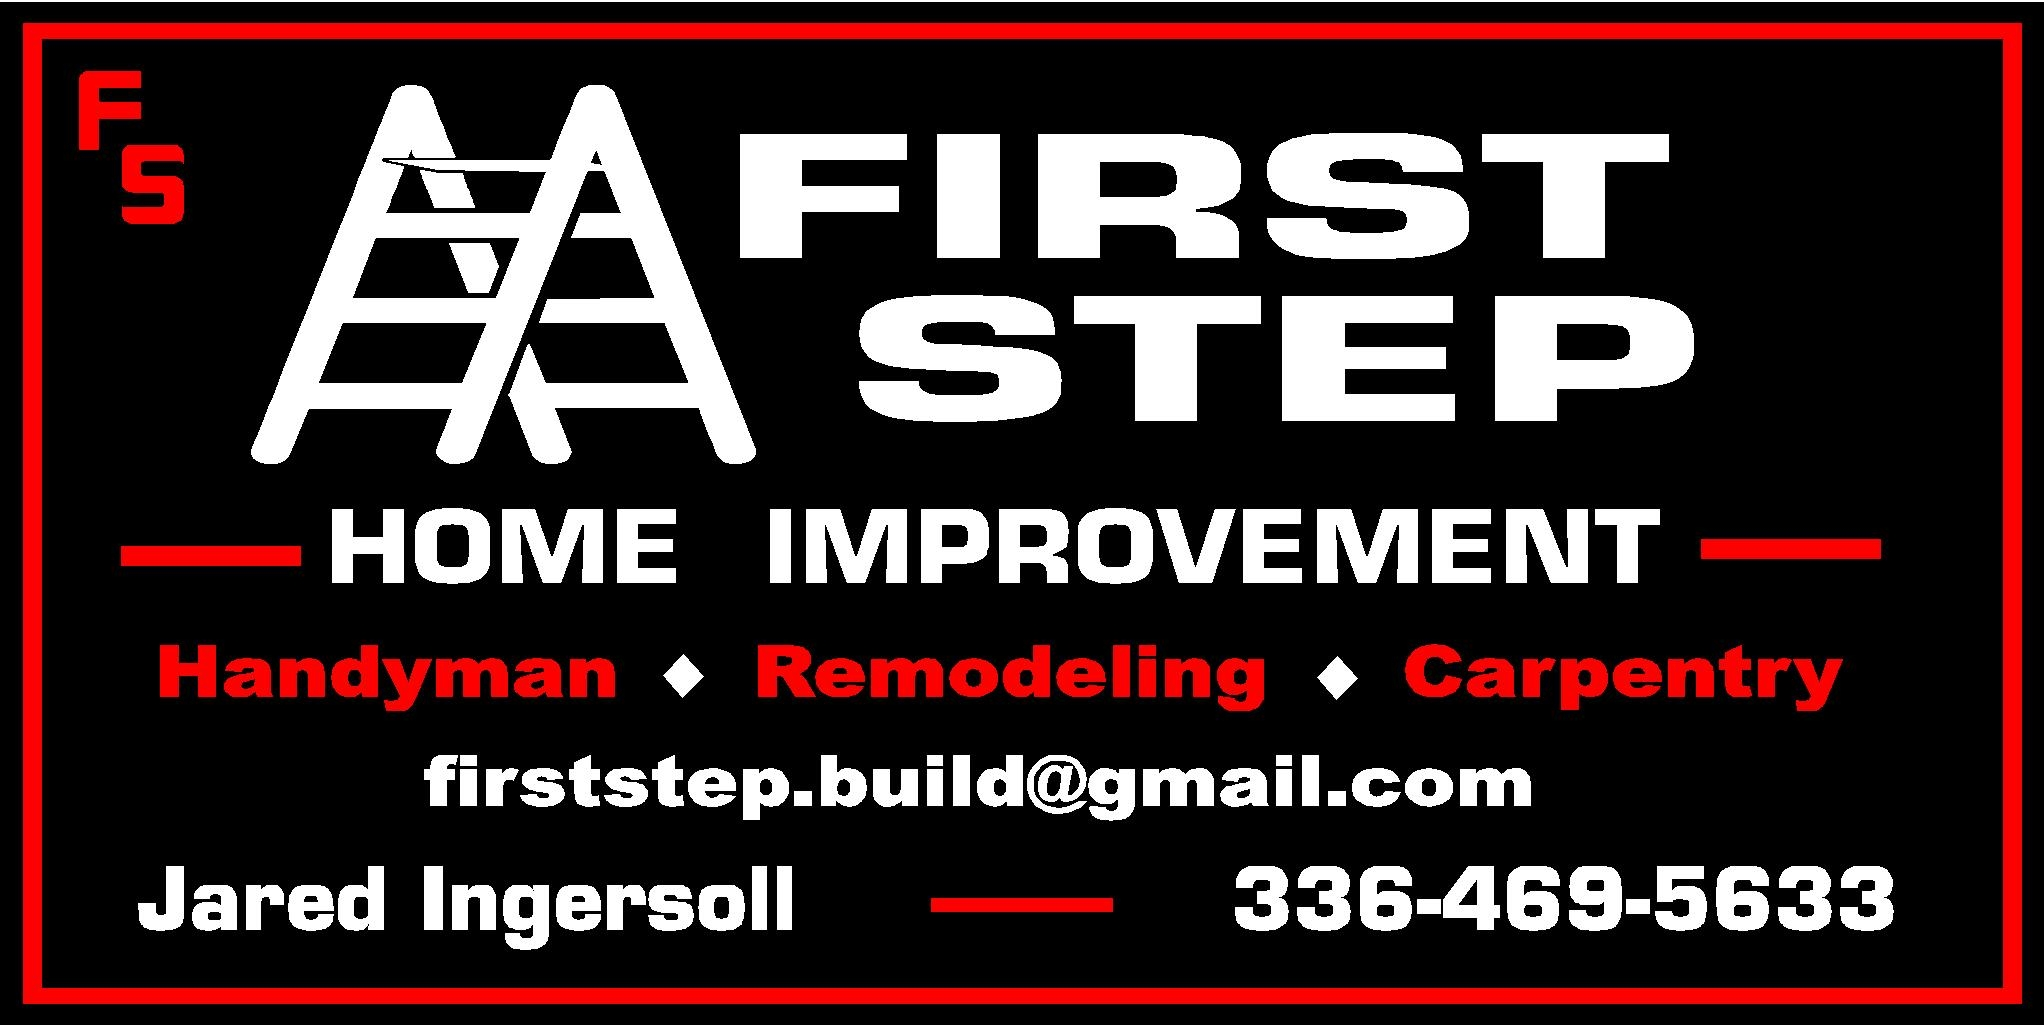 First Step Home Improvement logo